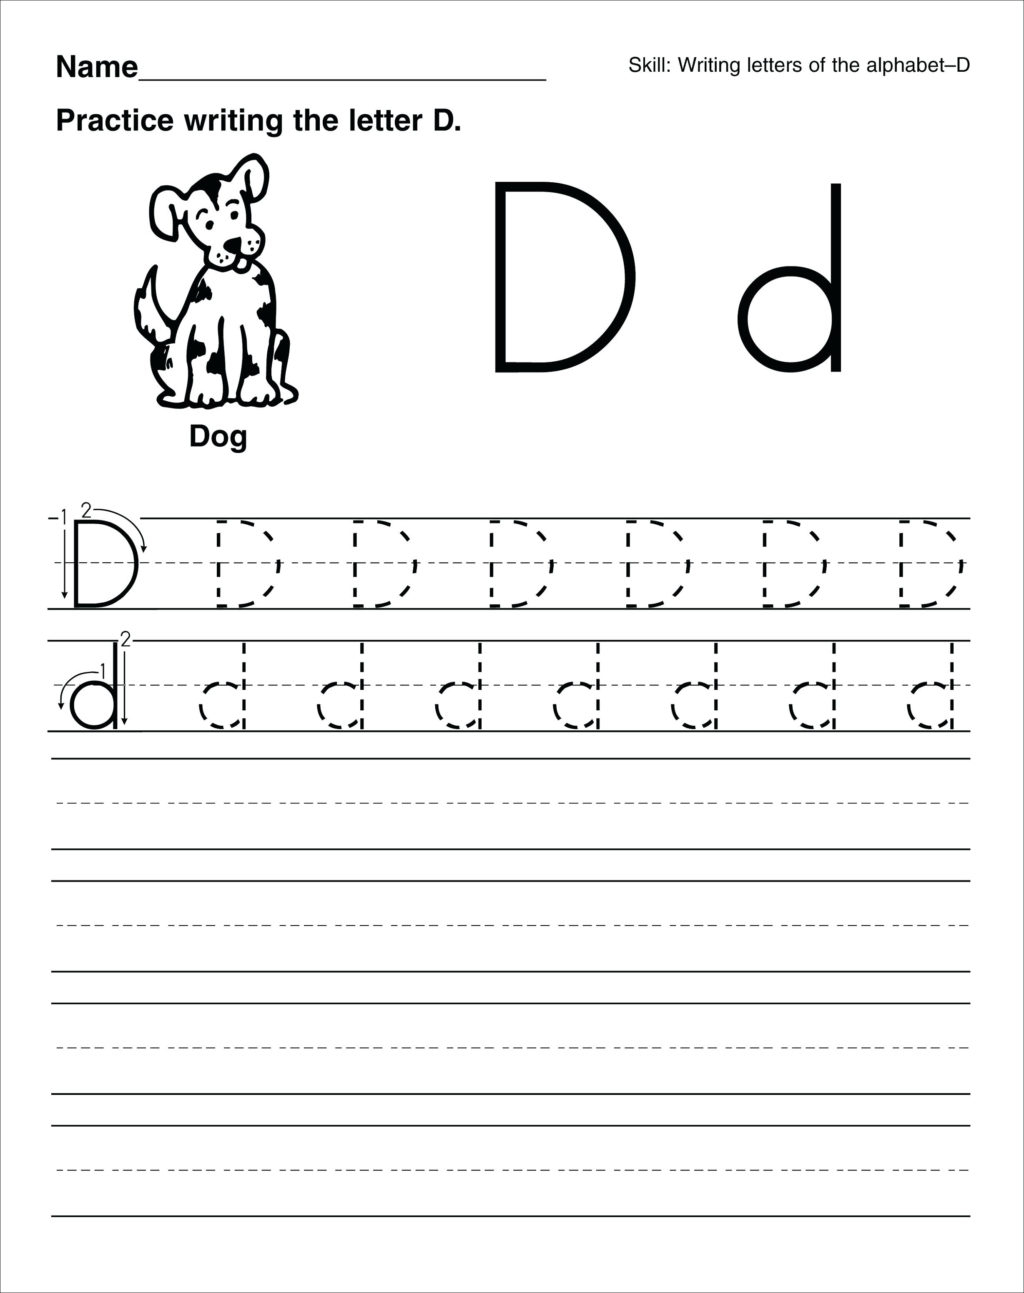 Worksheet ~ Free Handwriting Activity Sheets For Children pertaining to Letter D Worksheets For 2 Year Olds